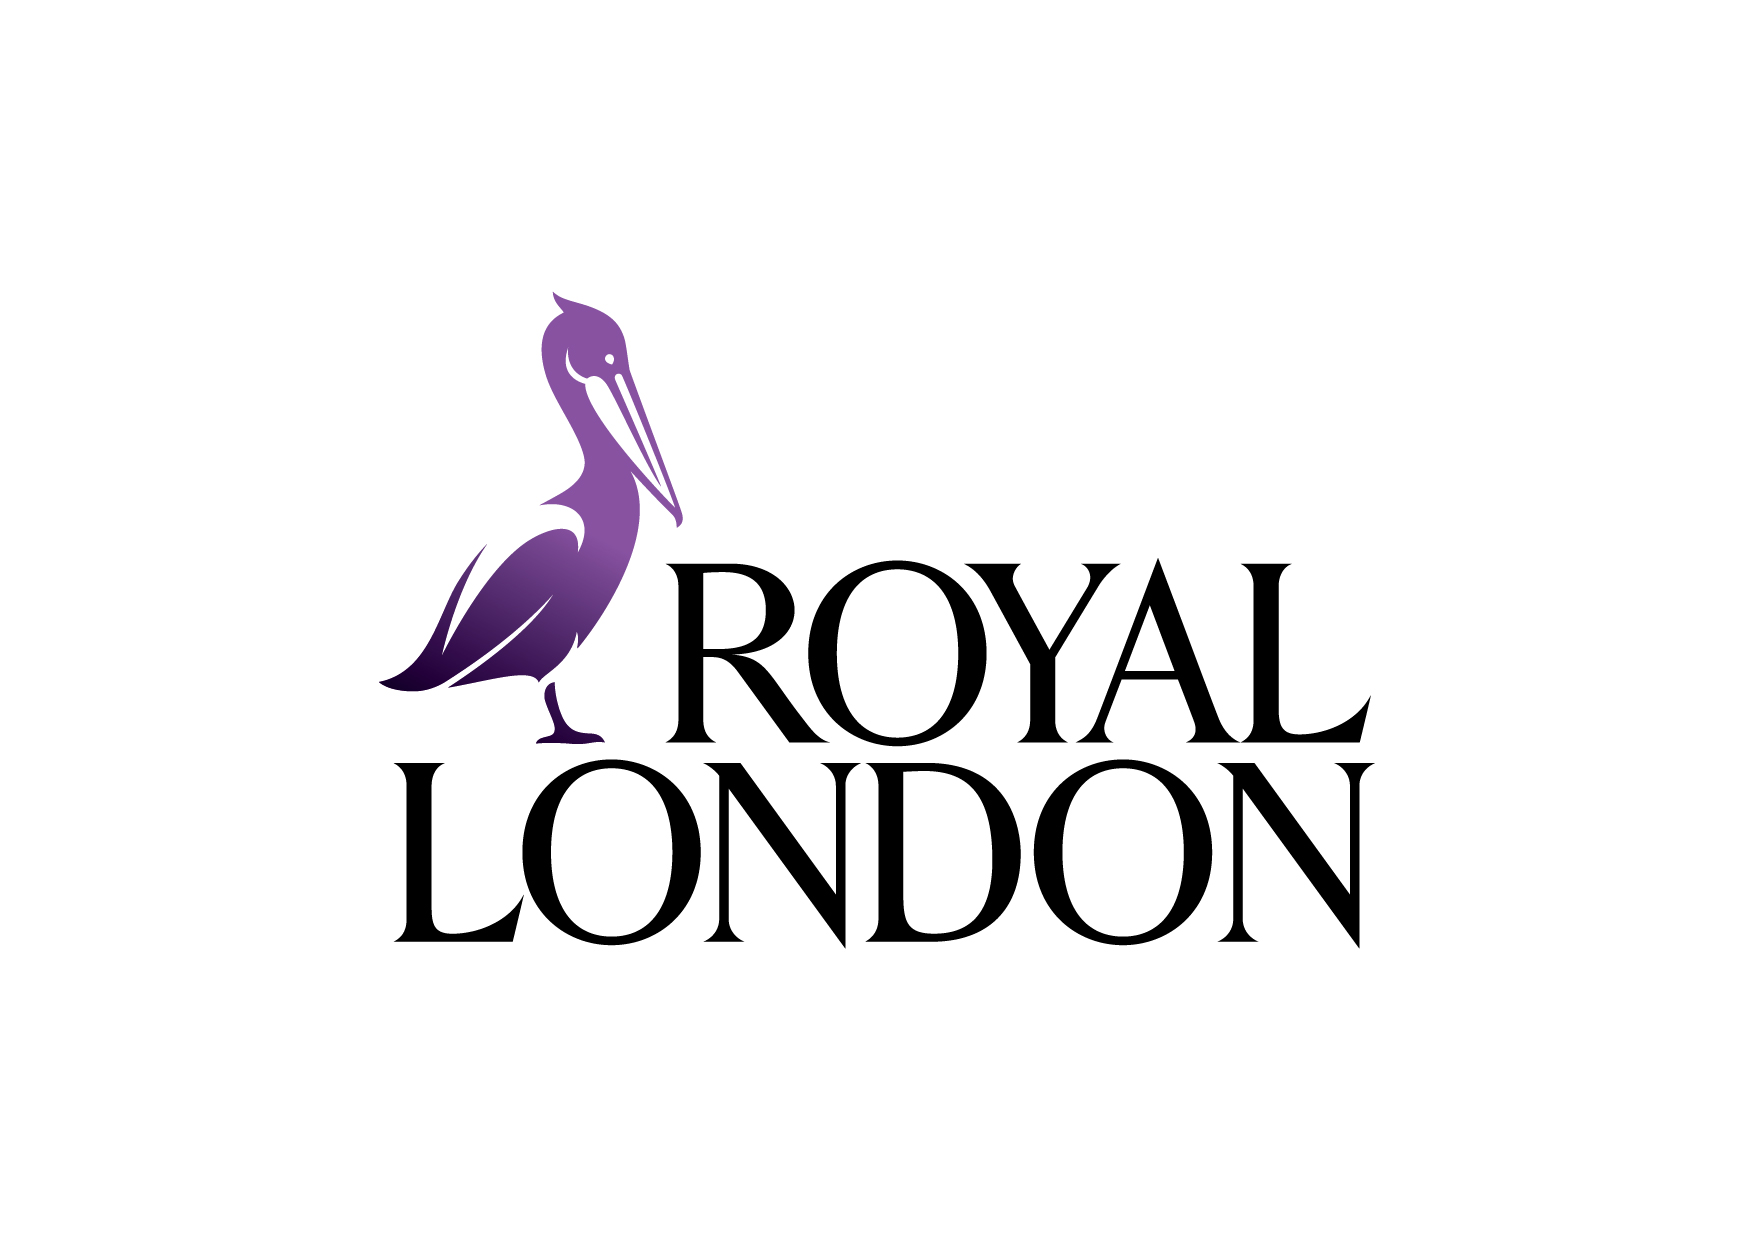 Royal London new brand identity